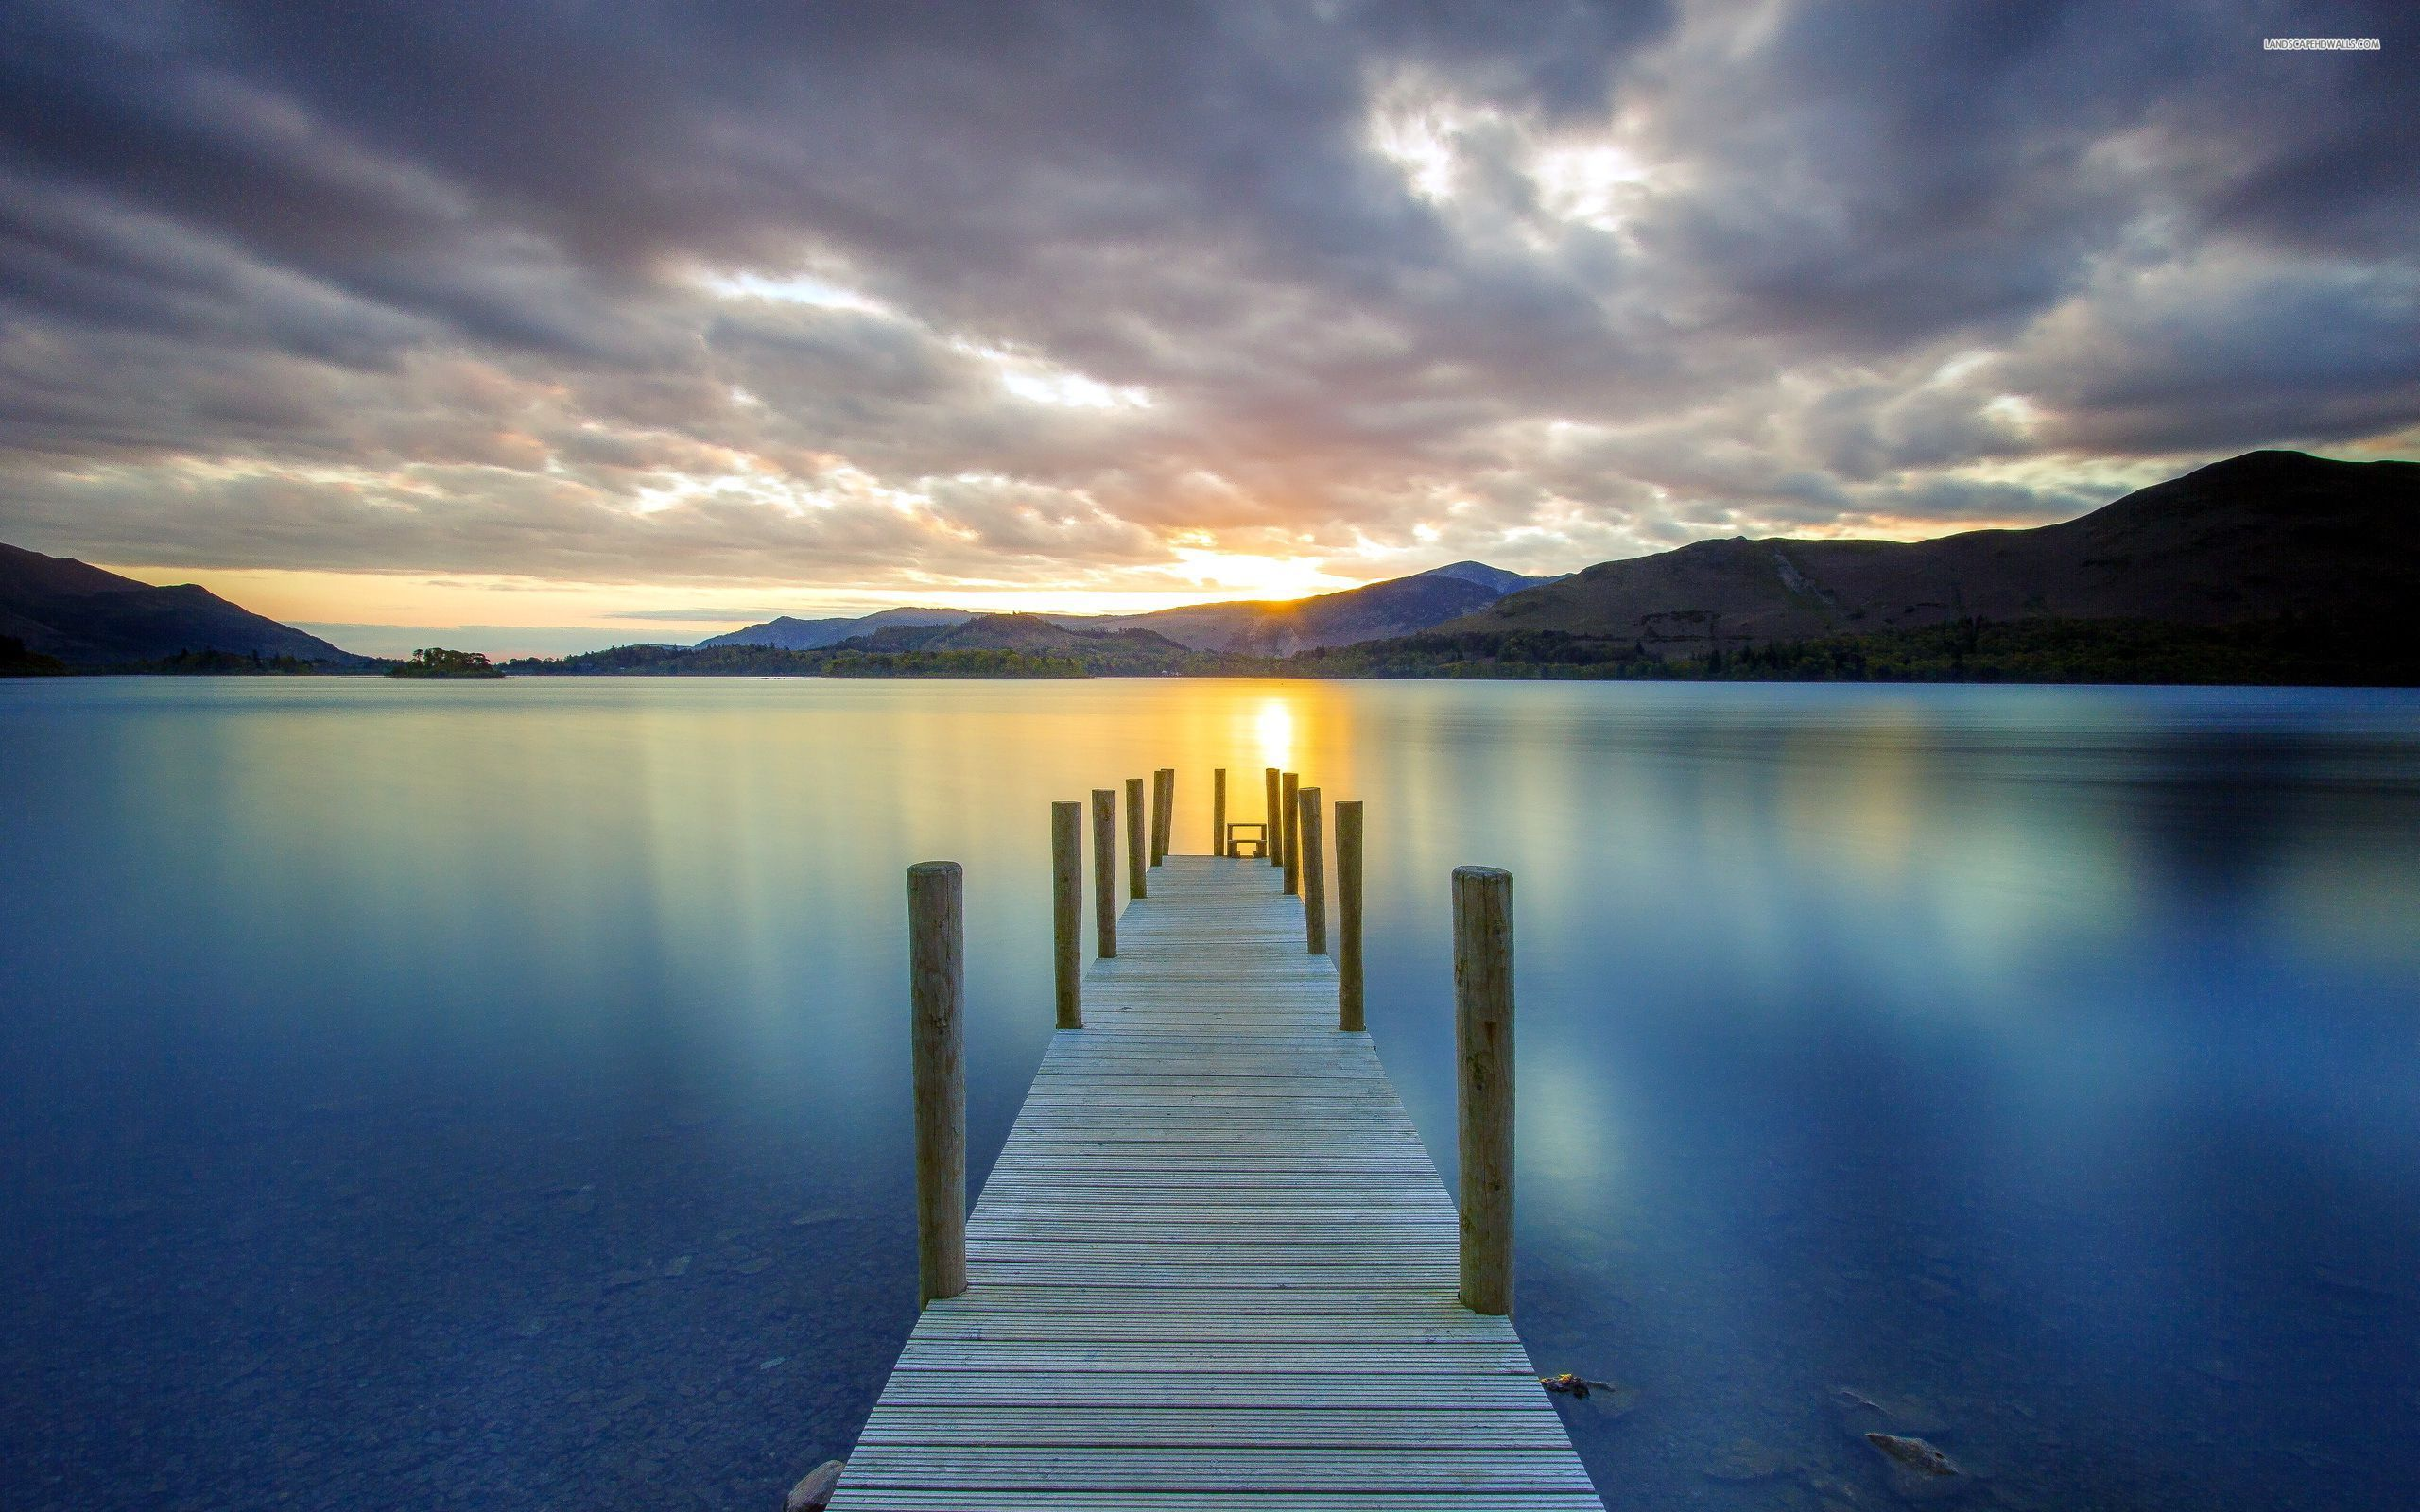 small-wooden-pier-on-the-calm-lake-4978-2560x1600